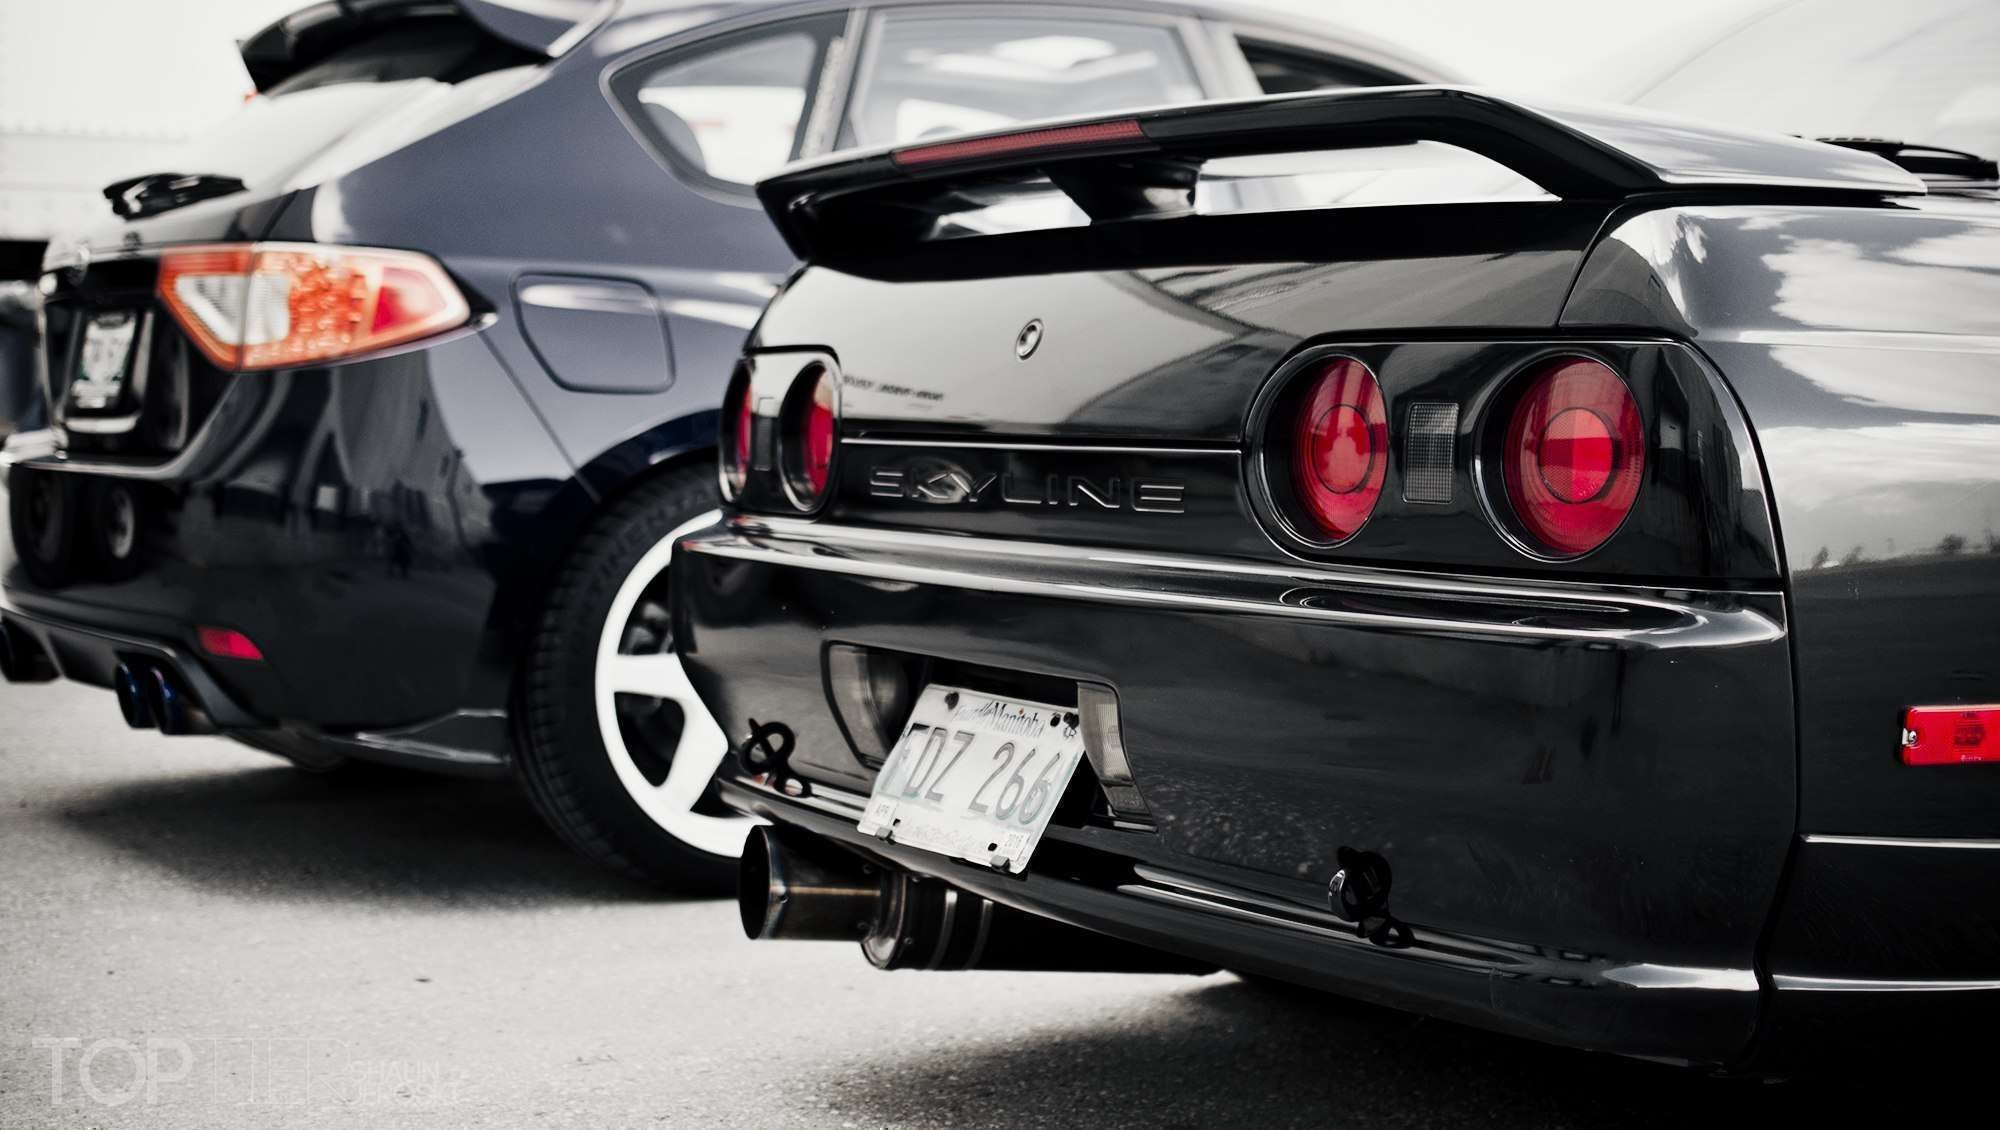 2000x1130 Nissan Skyline R32 Hd Wallpapers